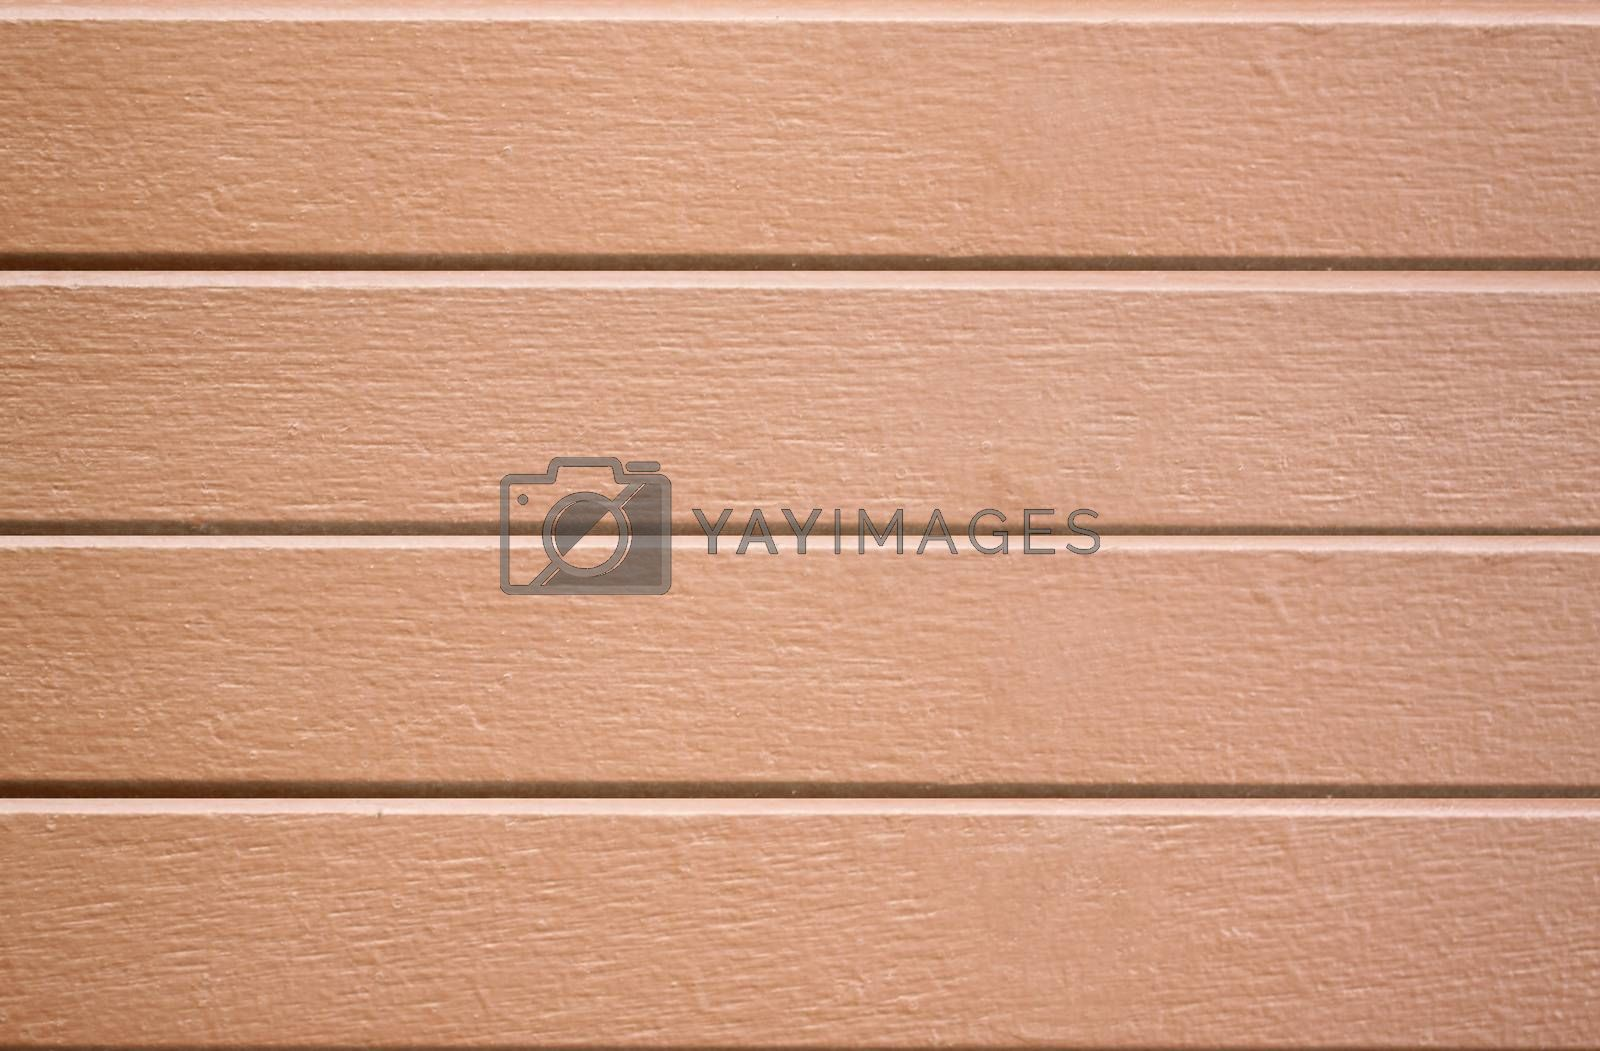 Royalty free image of Textured of brown wood wall. by meepoohyaphoto